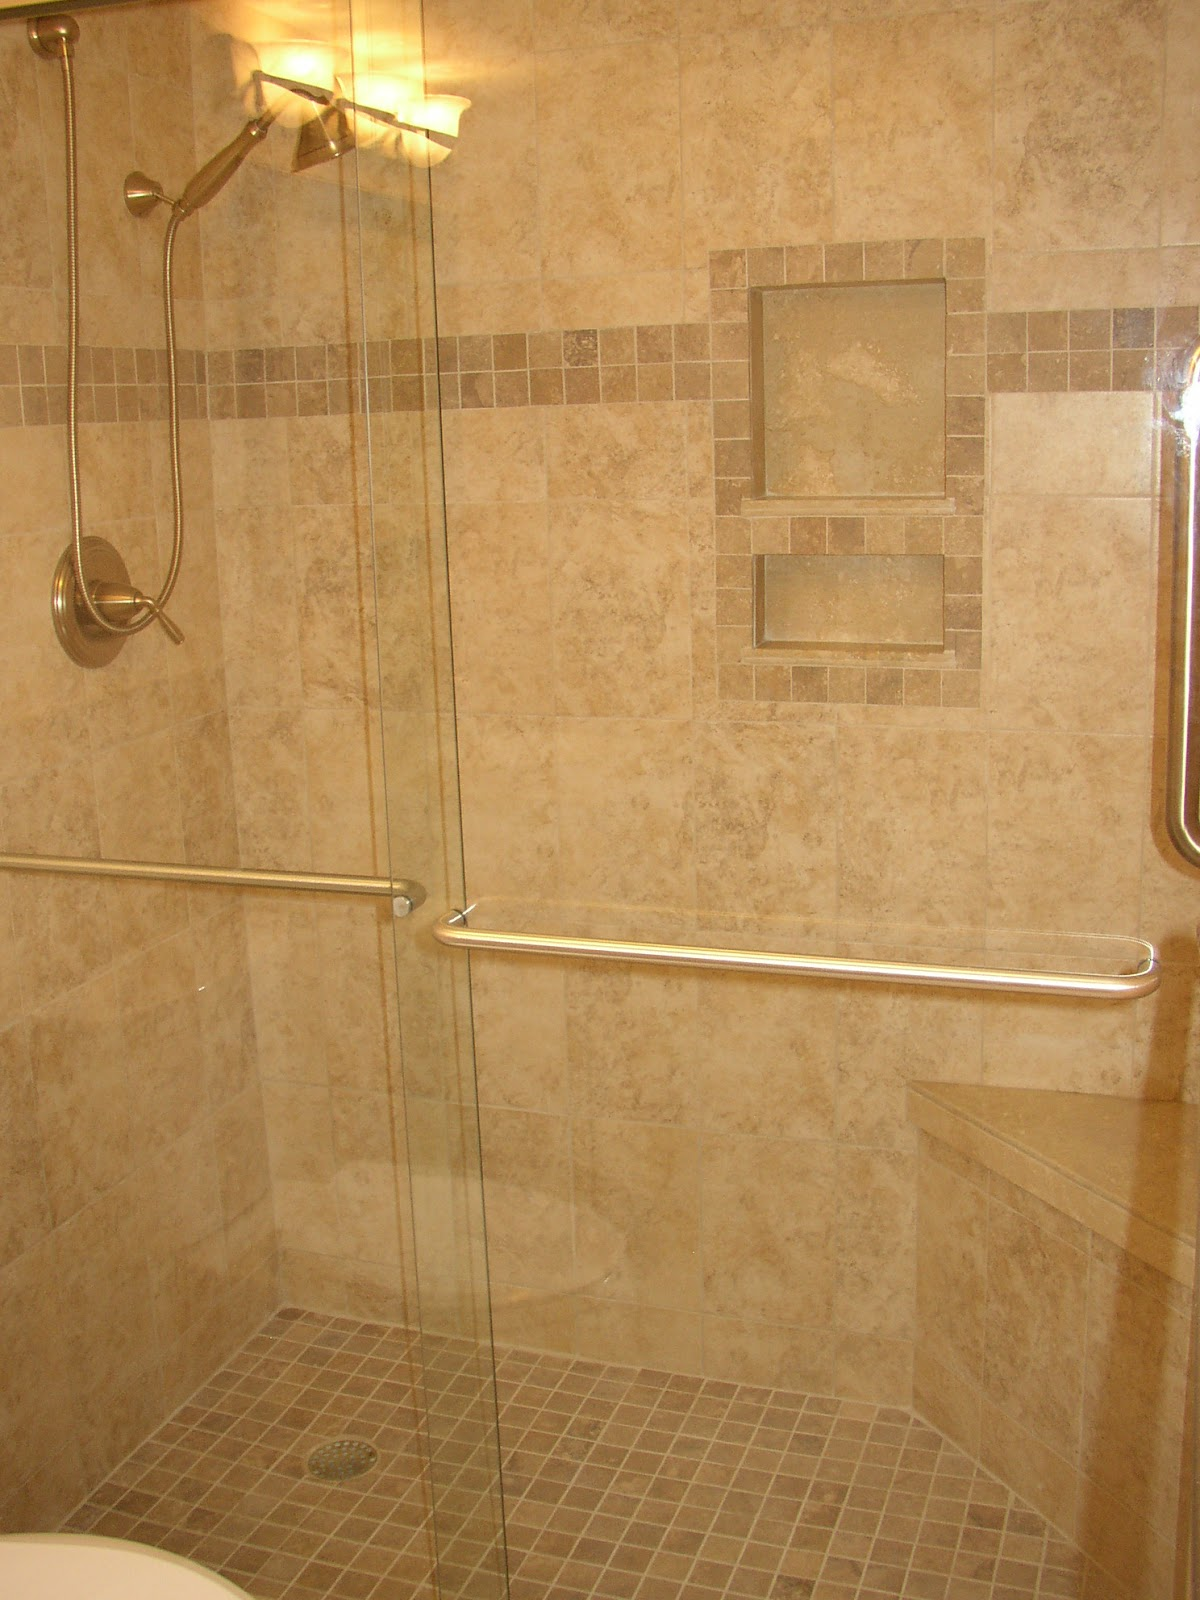 Design aholic i need a little blog love unplanned master bath reno Tile a shower